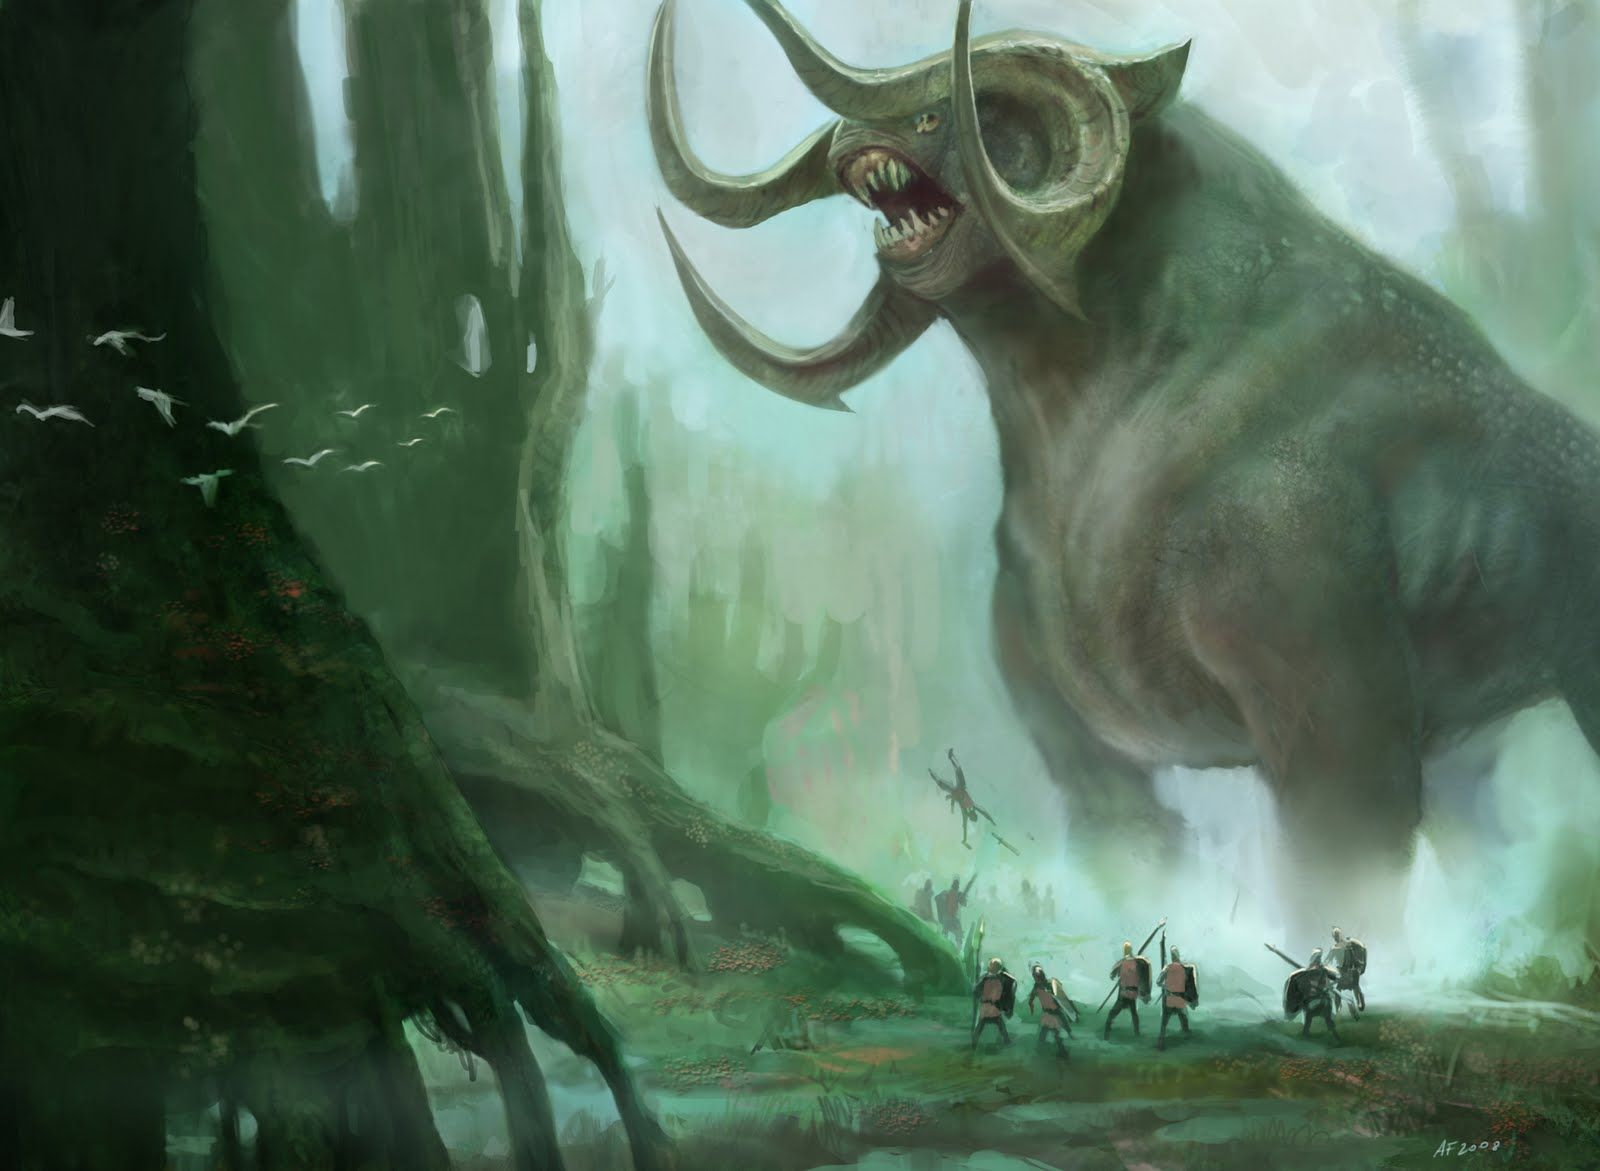 Worksheet Creature Myths mythical creature wallpaper giant wallpaper